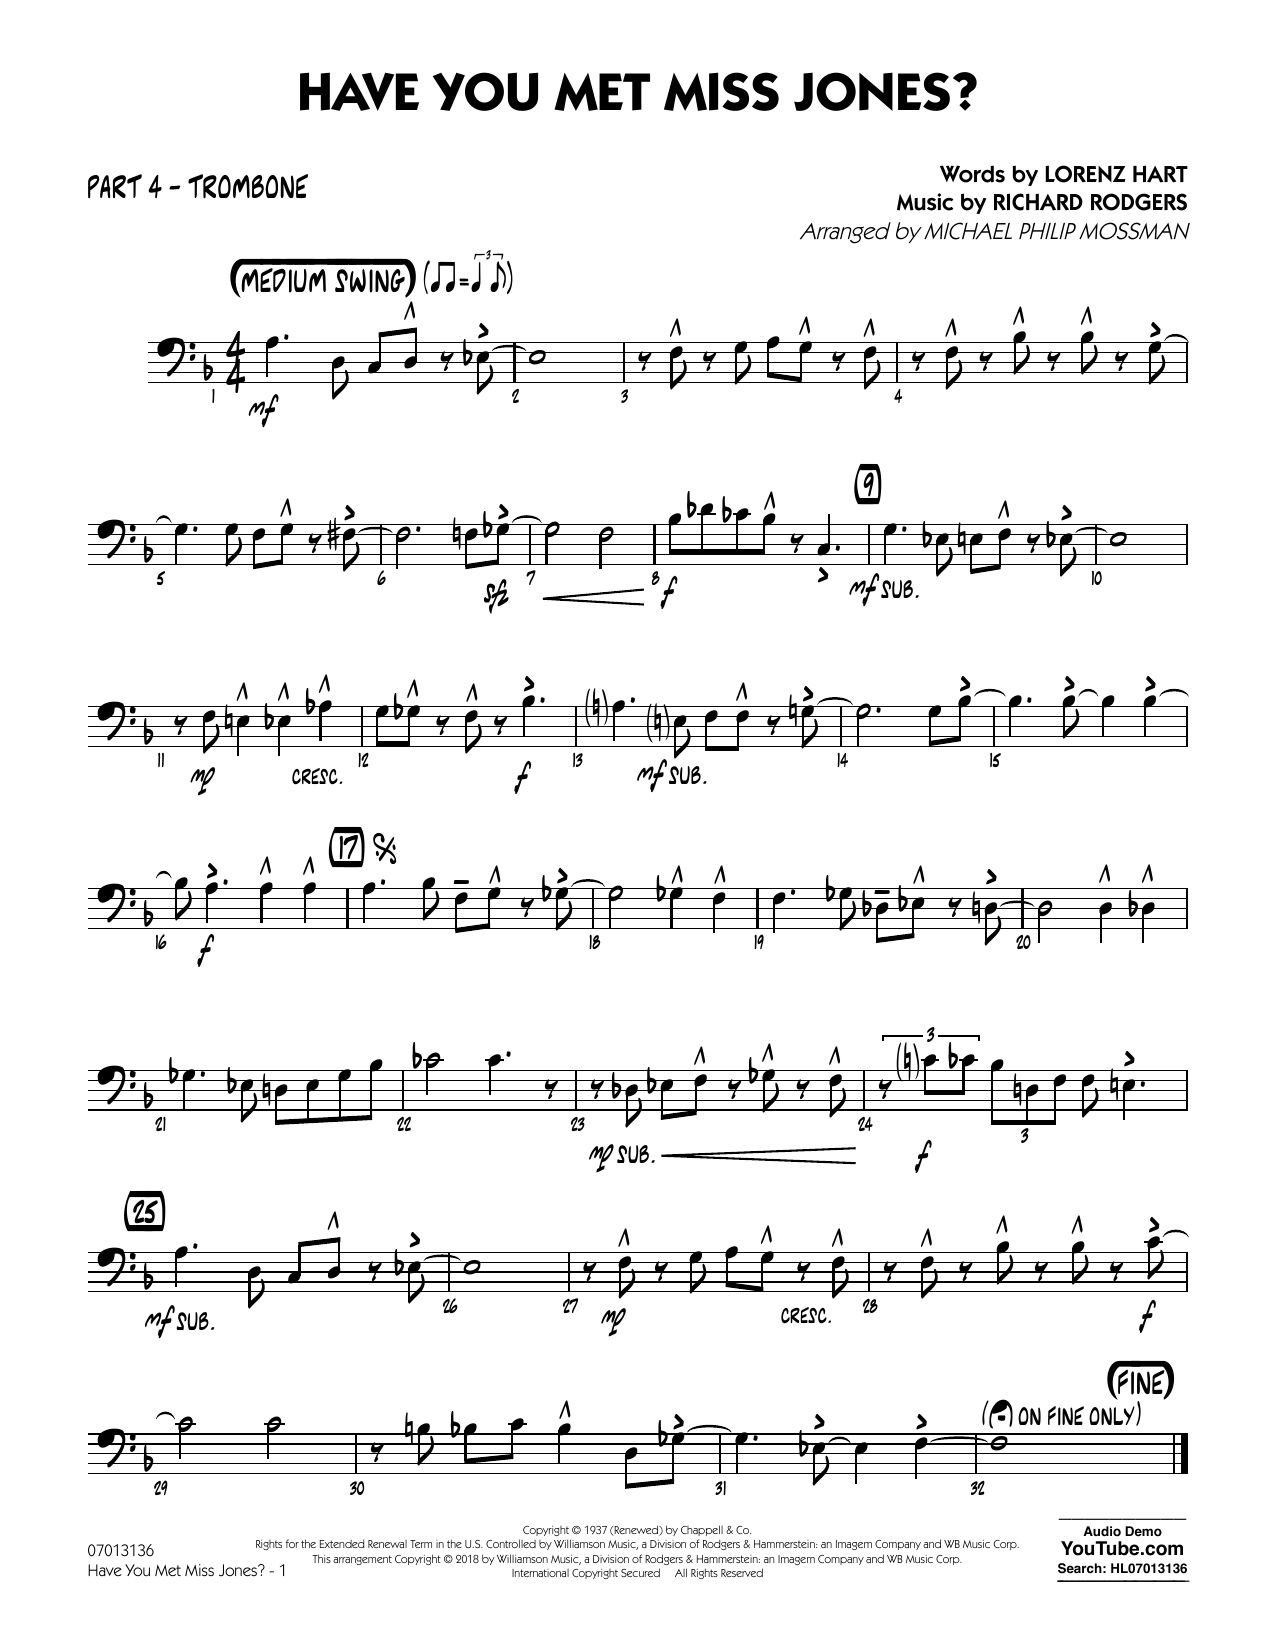 Rodgers & Hart Have You Met Miss Jones? (arr. Michael Mossman) - Part 4 - Trombone sheet music notes and chords. Download Printable PDF.